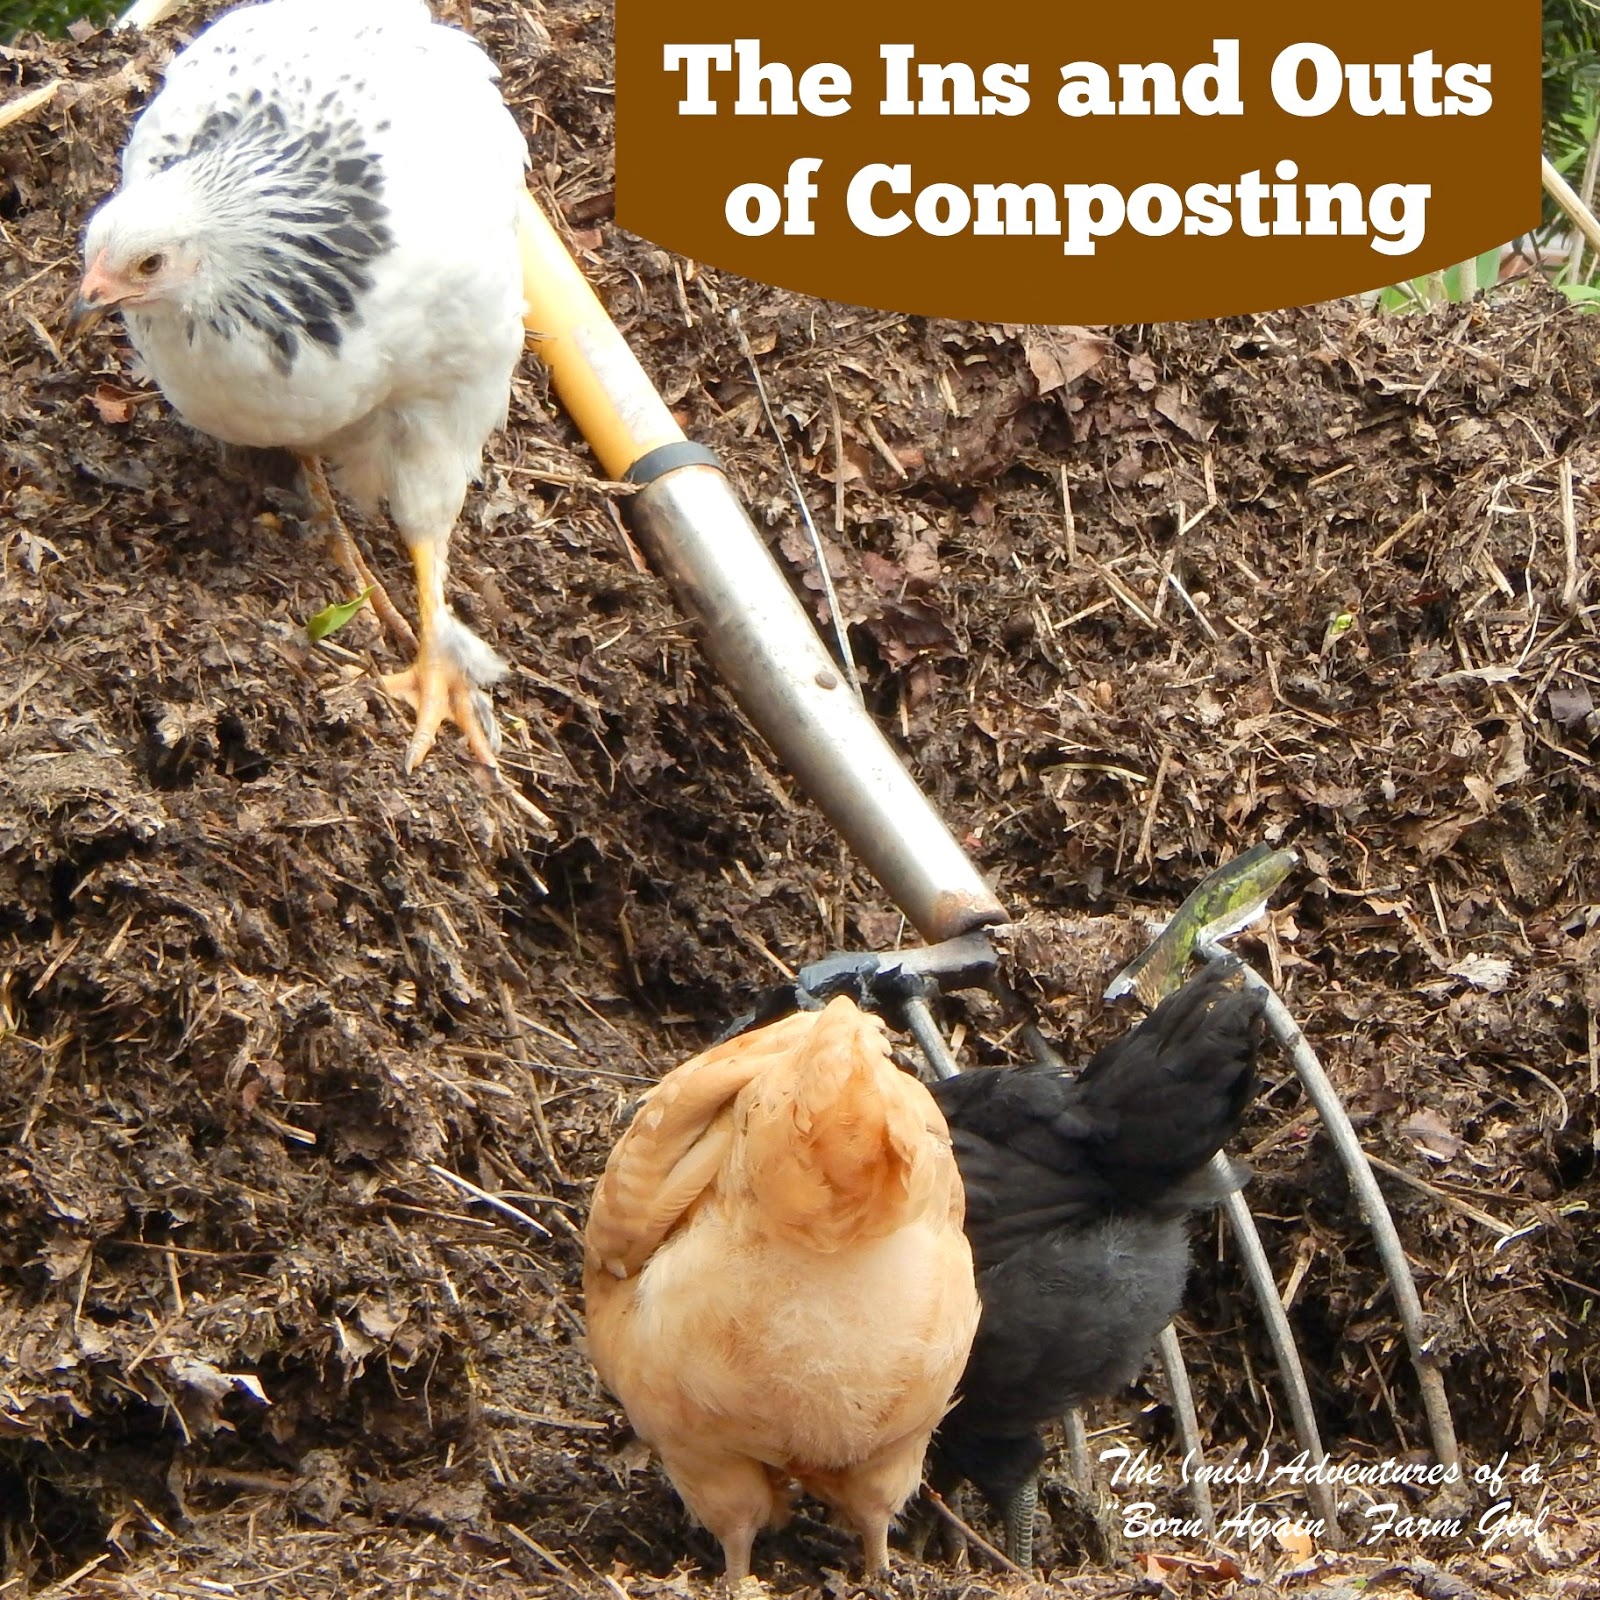 The Ins and Outs of Composting